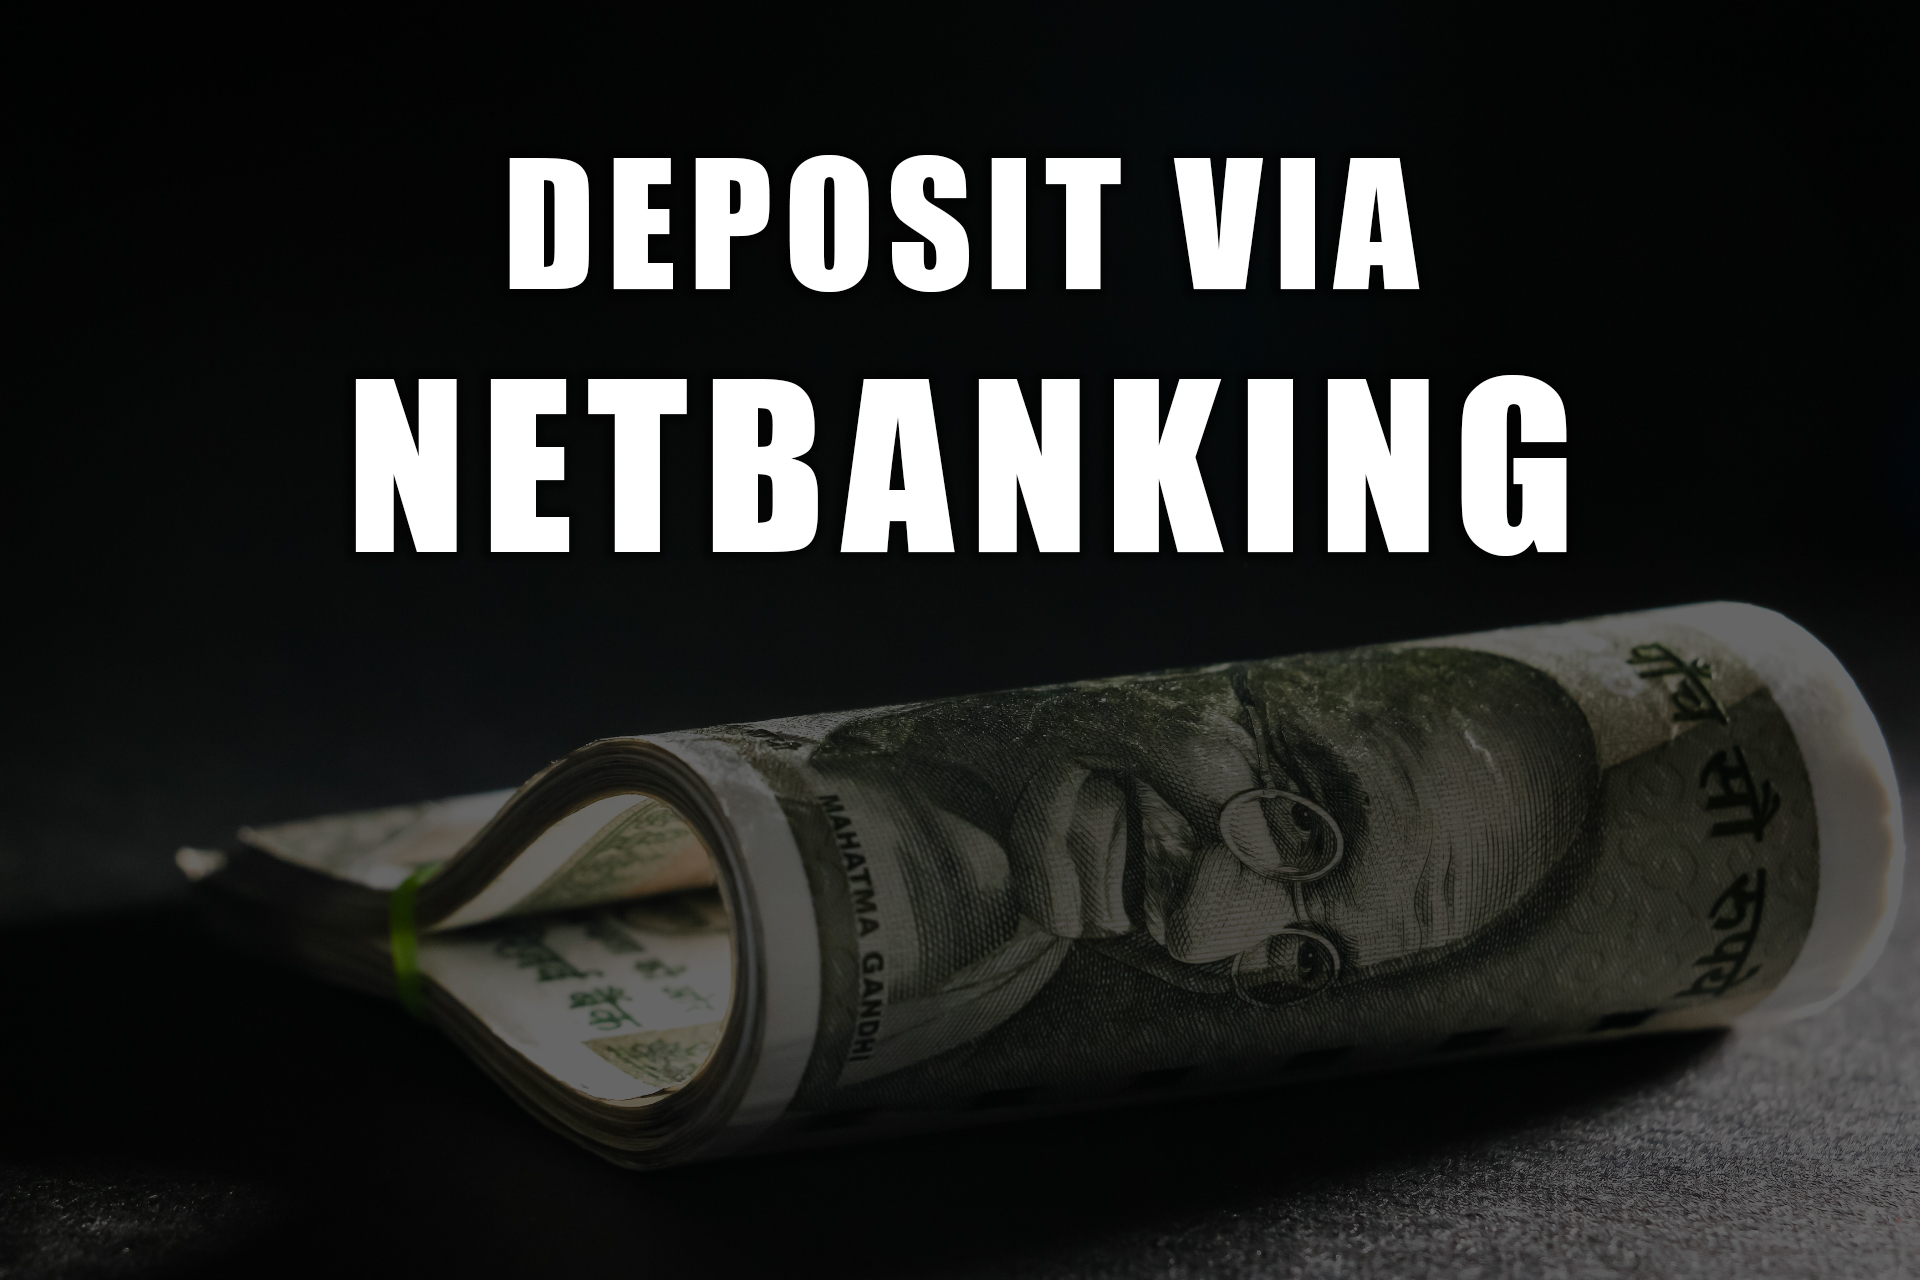 Bank cards can be used for topping up betting accounts as well.